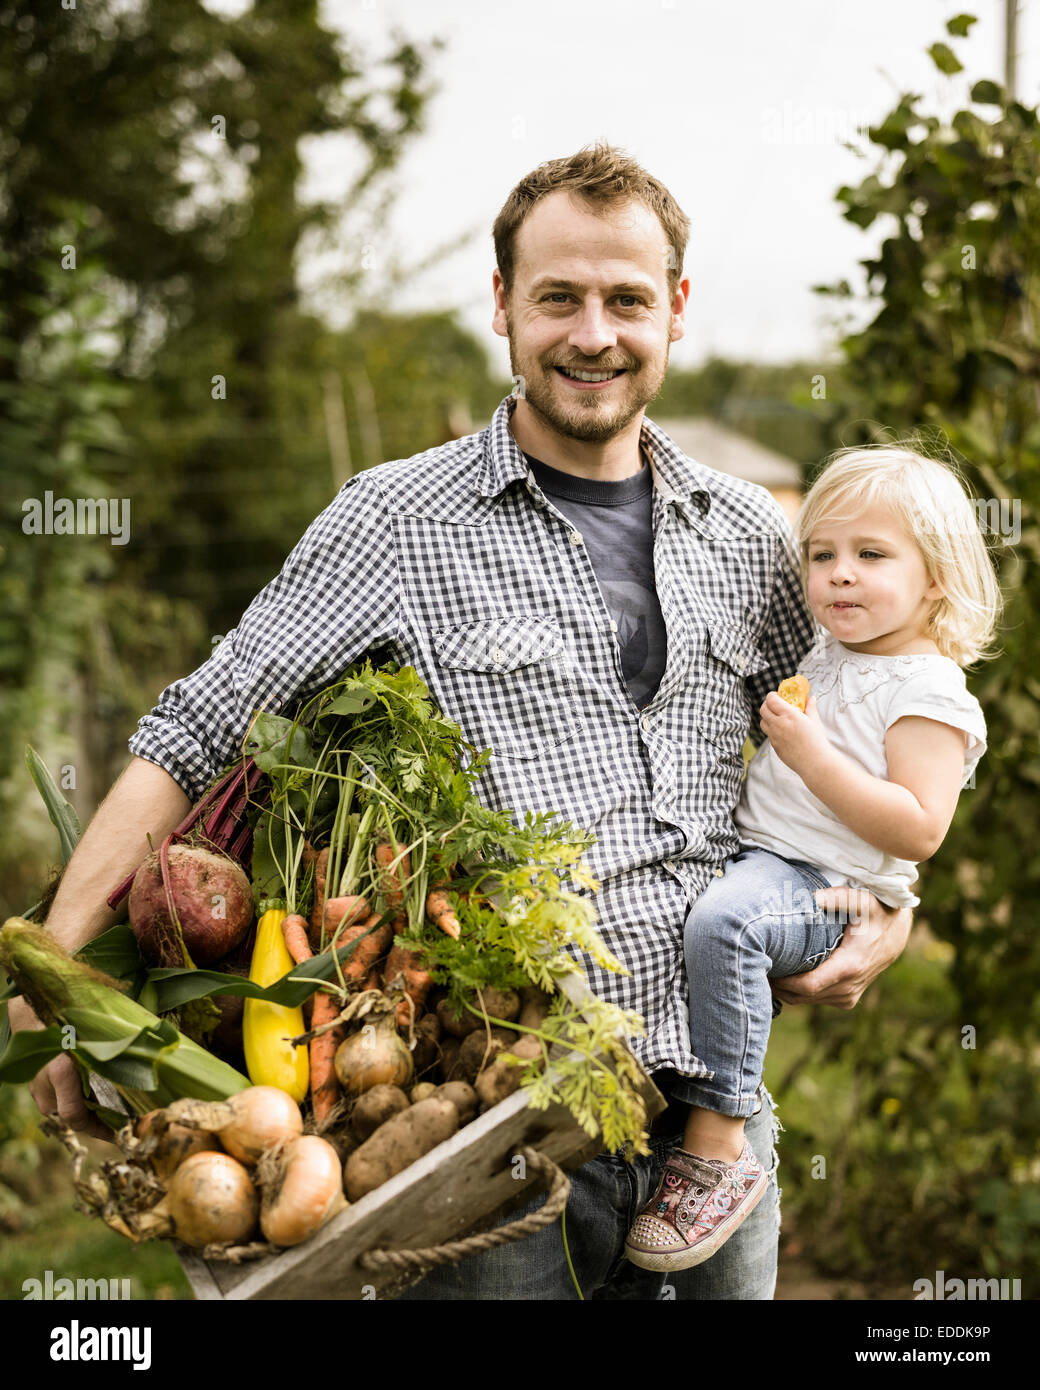 Man standing in his allotment with his daughter, smiling, holding a box full of freshly picked vegetables. - Stock Image